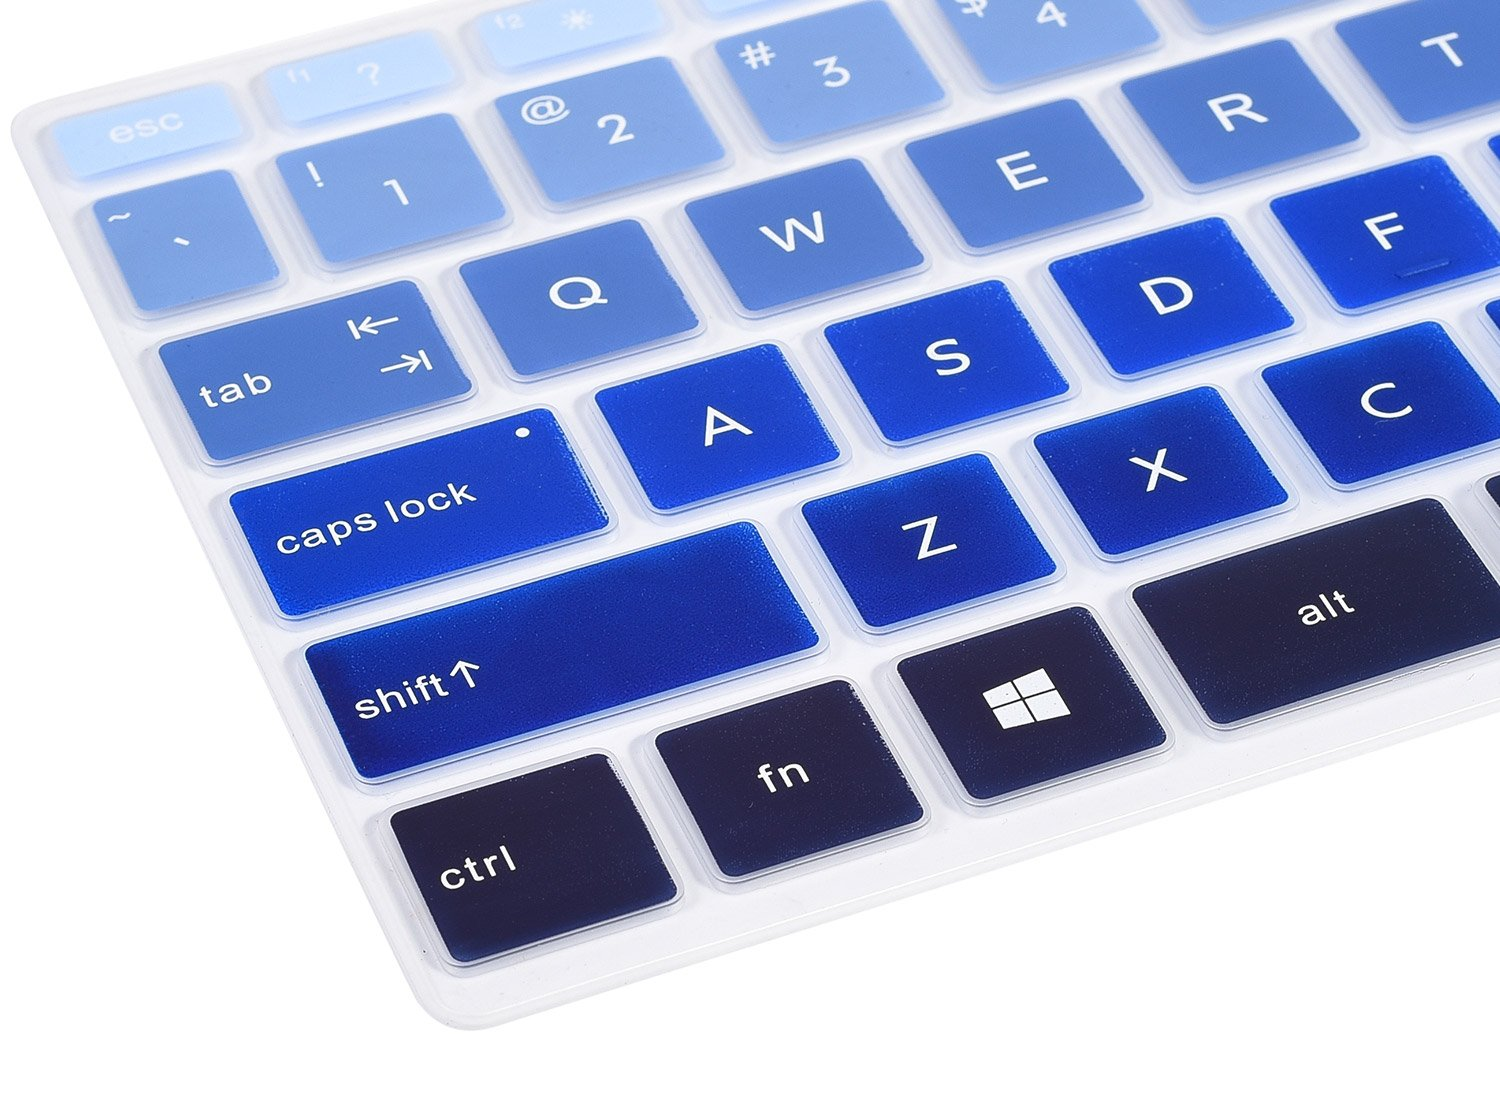 Blue CaseBuy Keyboard Cover for HP Pavilion X360 14M-BA011DX 14M-BA013DX 14M-BA015DX 14M-BA114DX 14-BF040WM 14-BF050WM 14M-CD0001DX 14M-CD0003DX 14-CM0010NR 14 inch Laptop US Layout